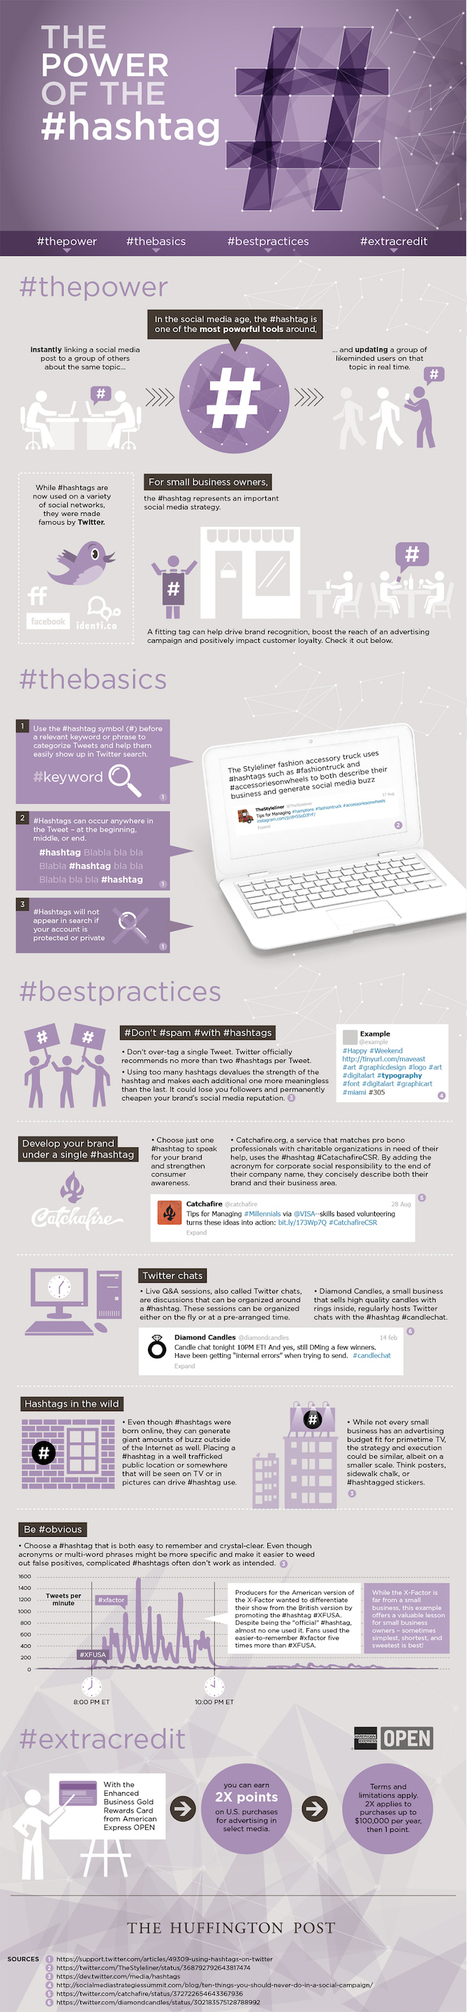 A Simple Guide to Using Hashtags on Twitter [Infographic] - HubSpot | search engine optimization | Scoop.it